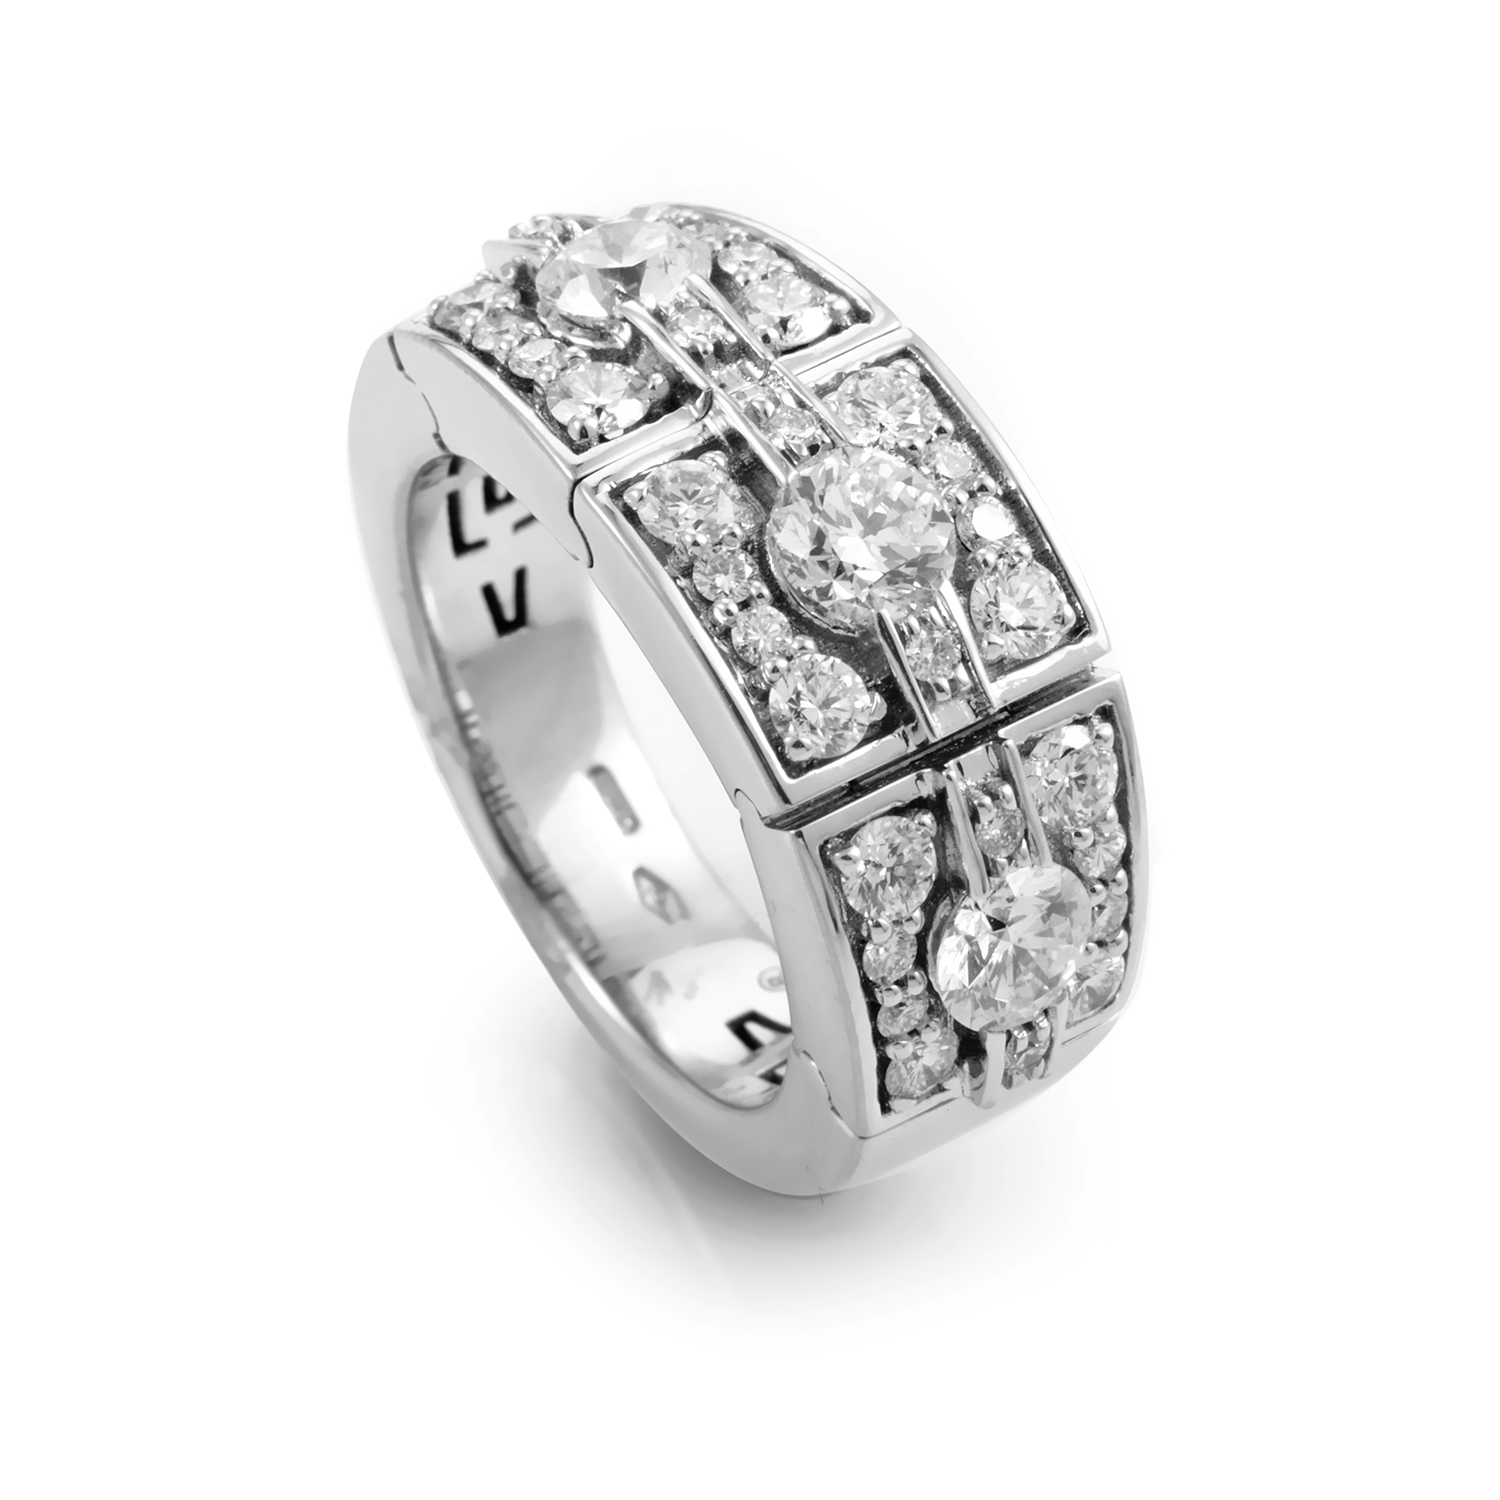 Jacqueline 18K White Gold Diamond Band Ring